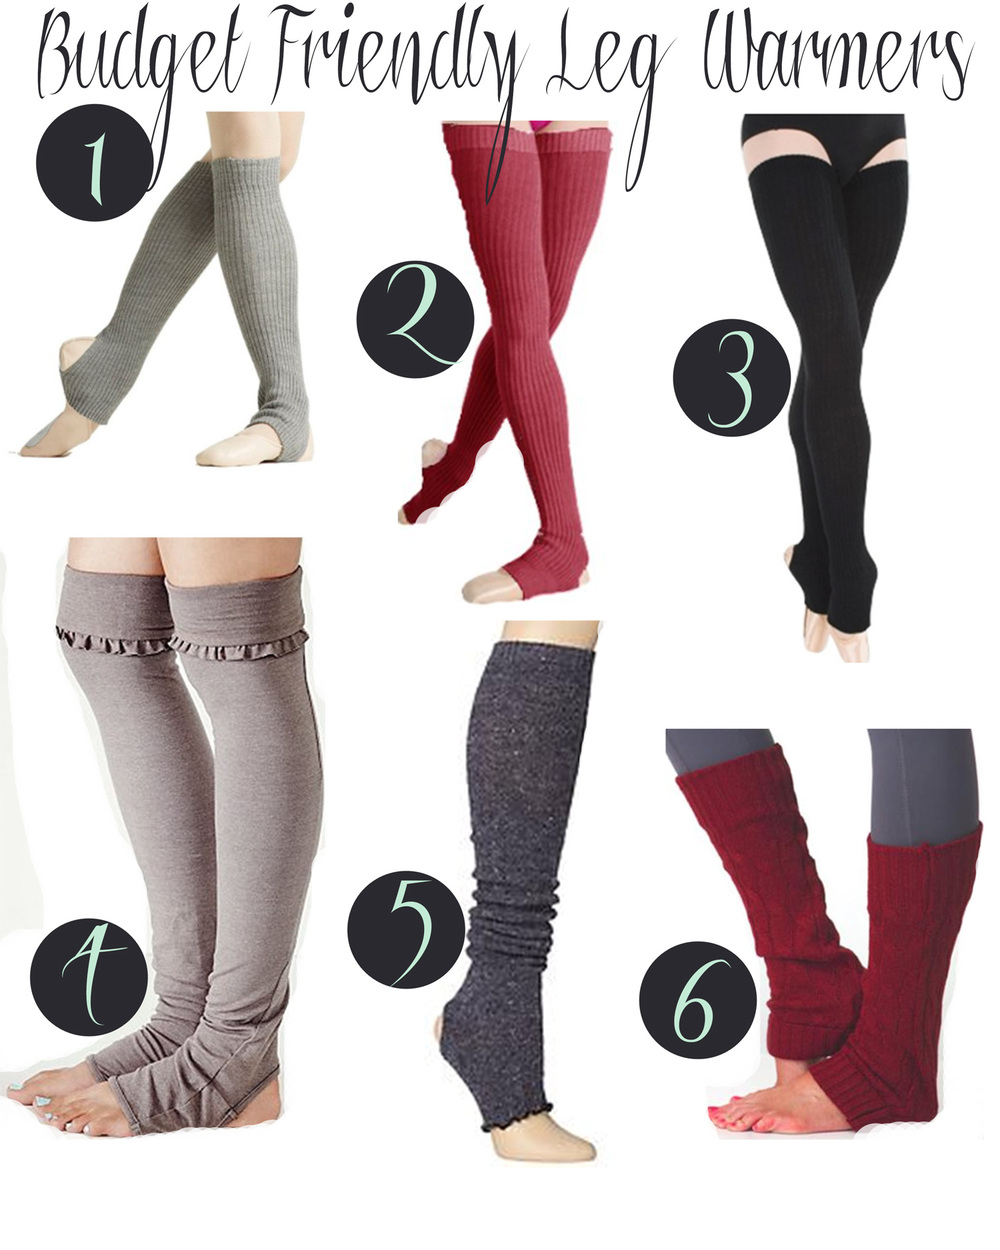 Pin it! Leg warmers